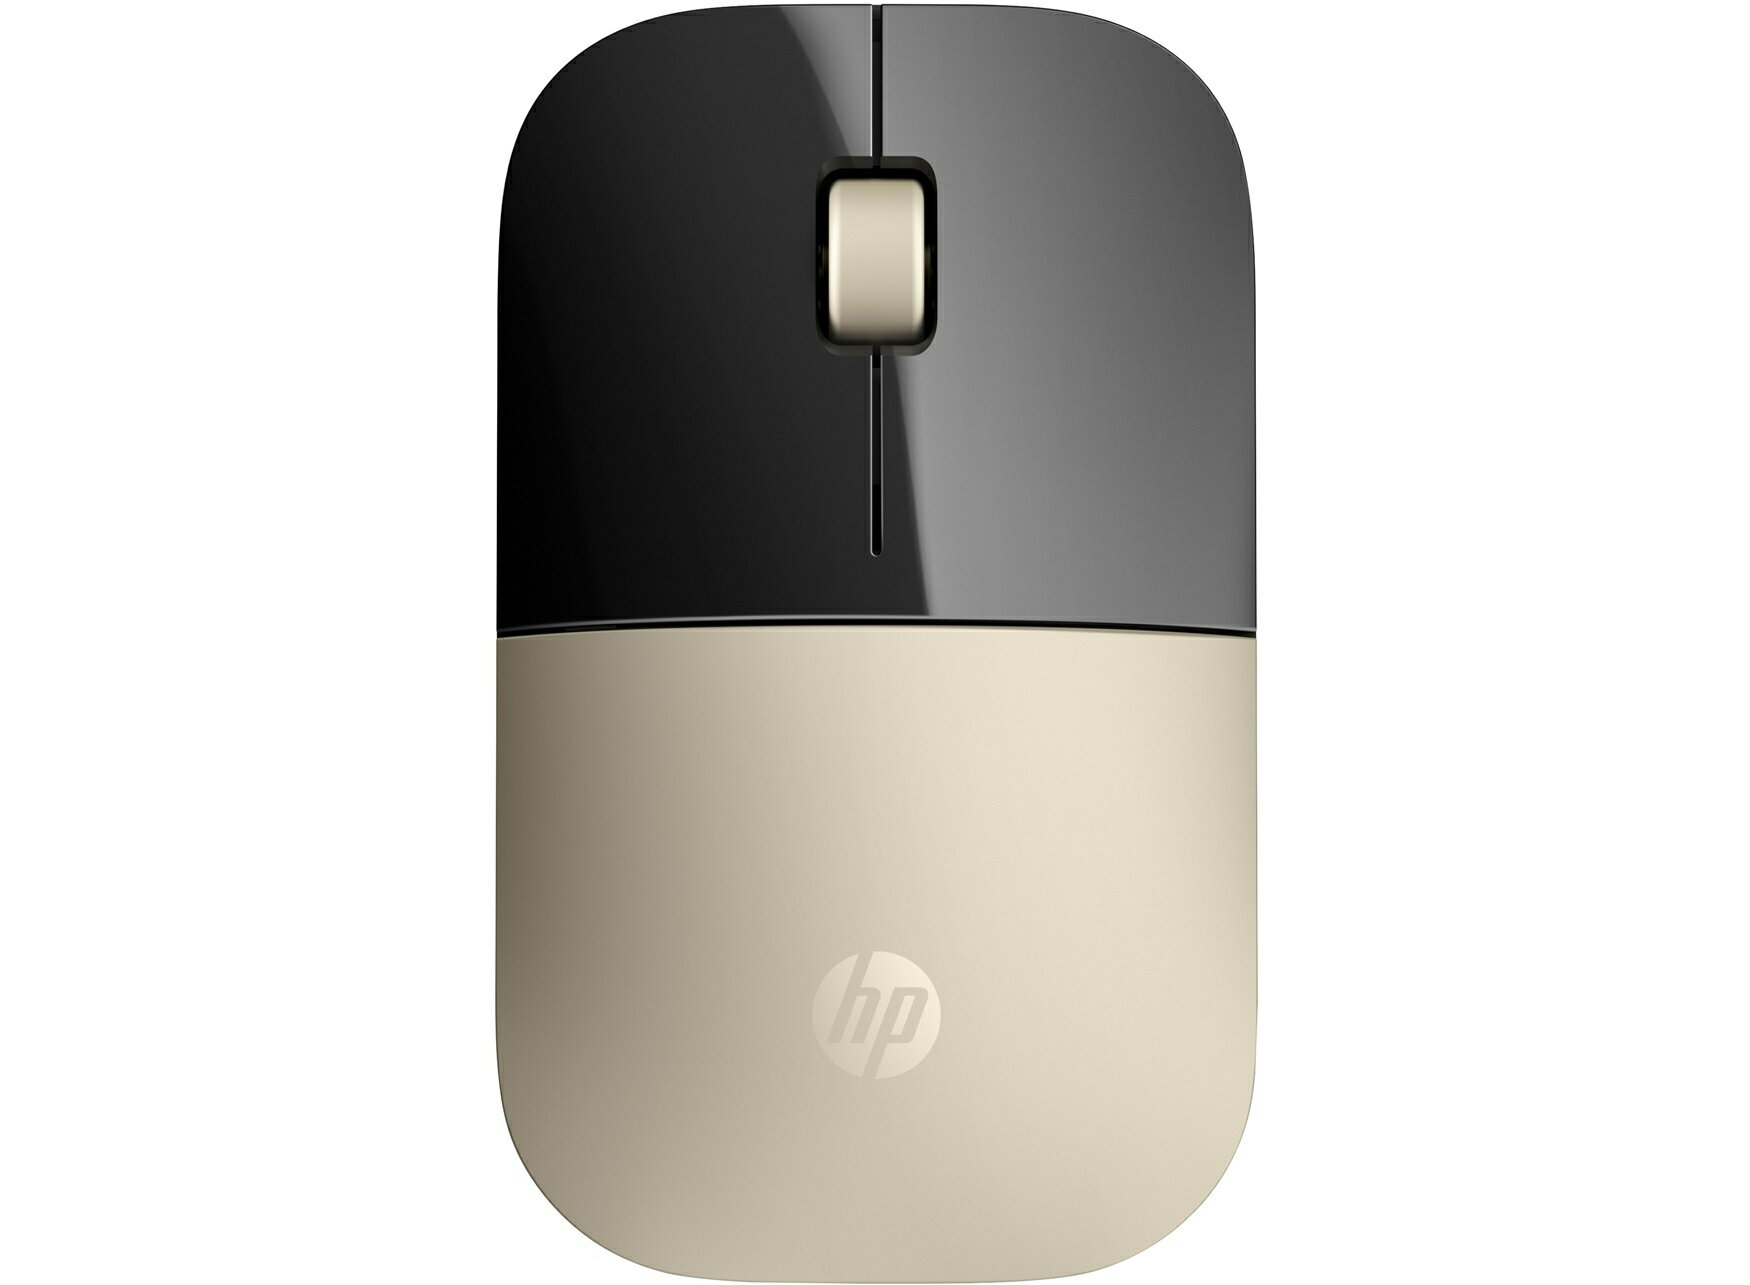 HP Z3700 X7Q43AA Gold Wireless Mouse 無線滑鼠(金色)《免運》